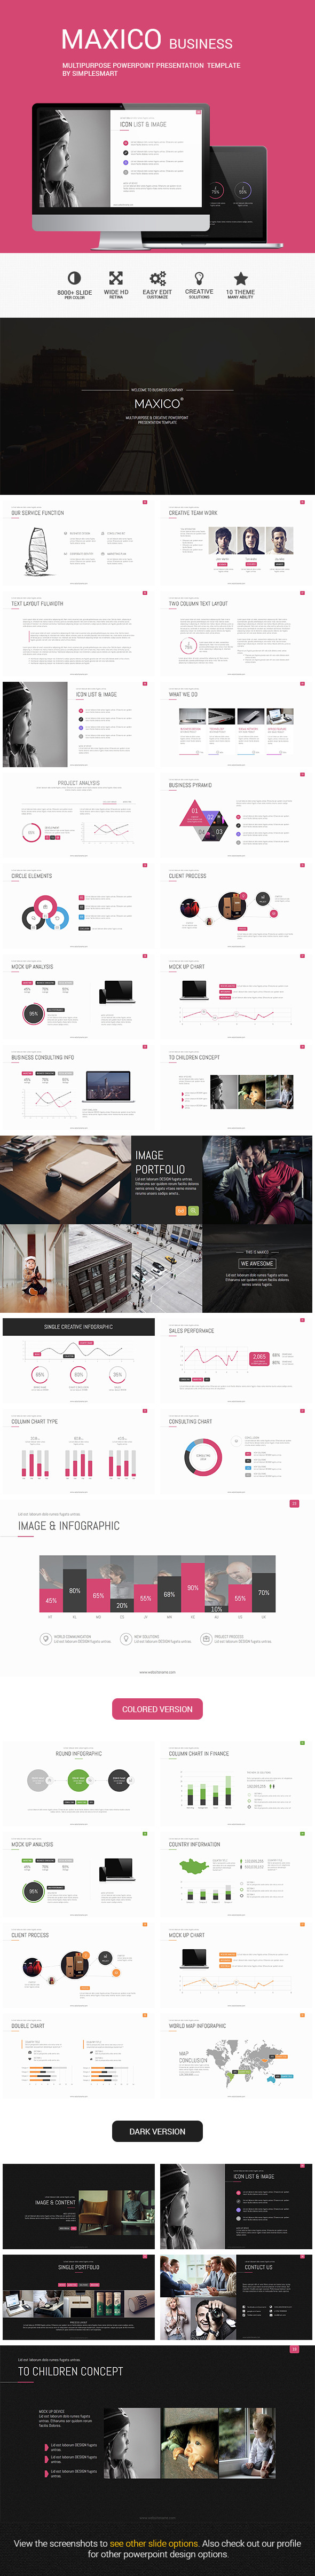 GraphicRiver MAXICO Multipurpose Presentation Template 8952716